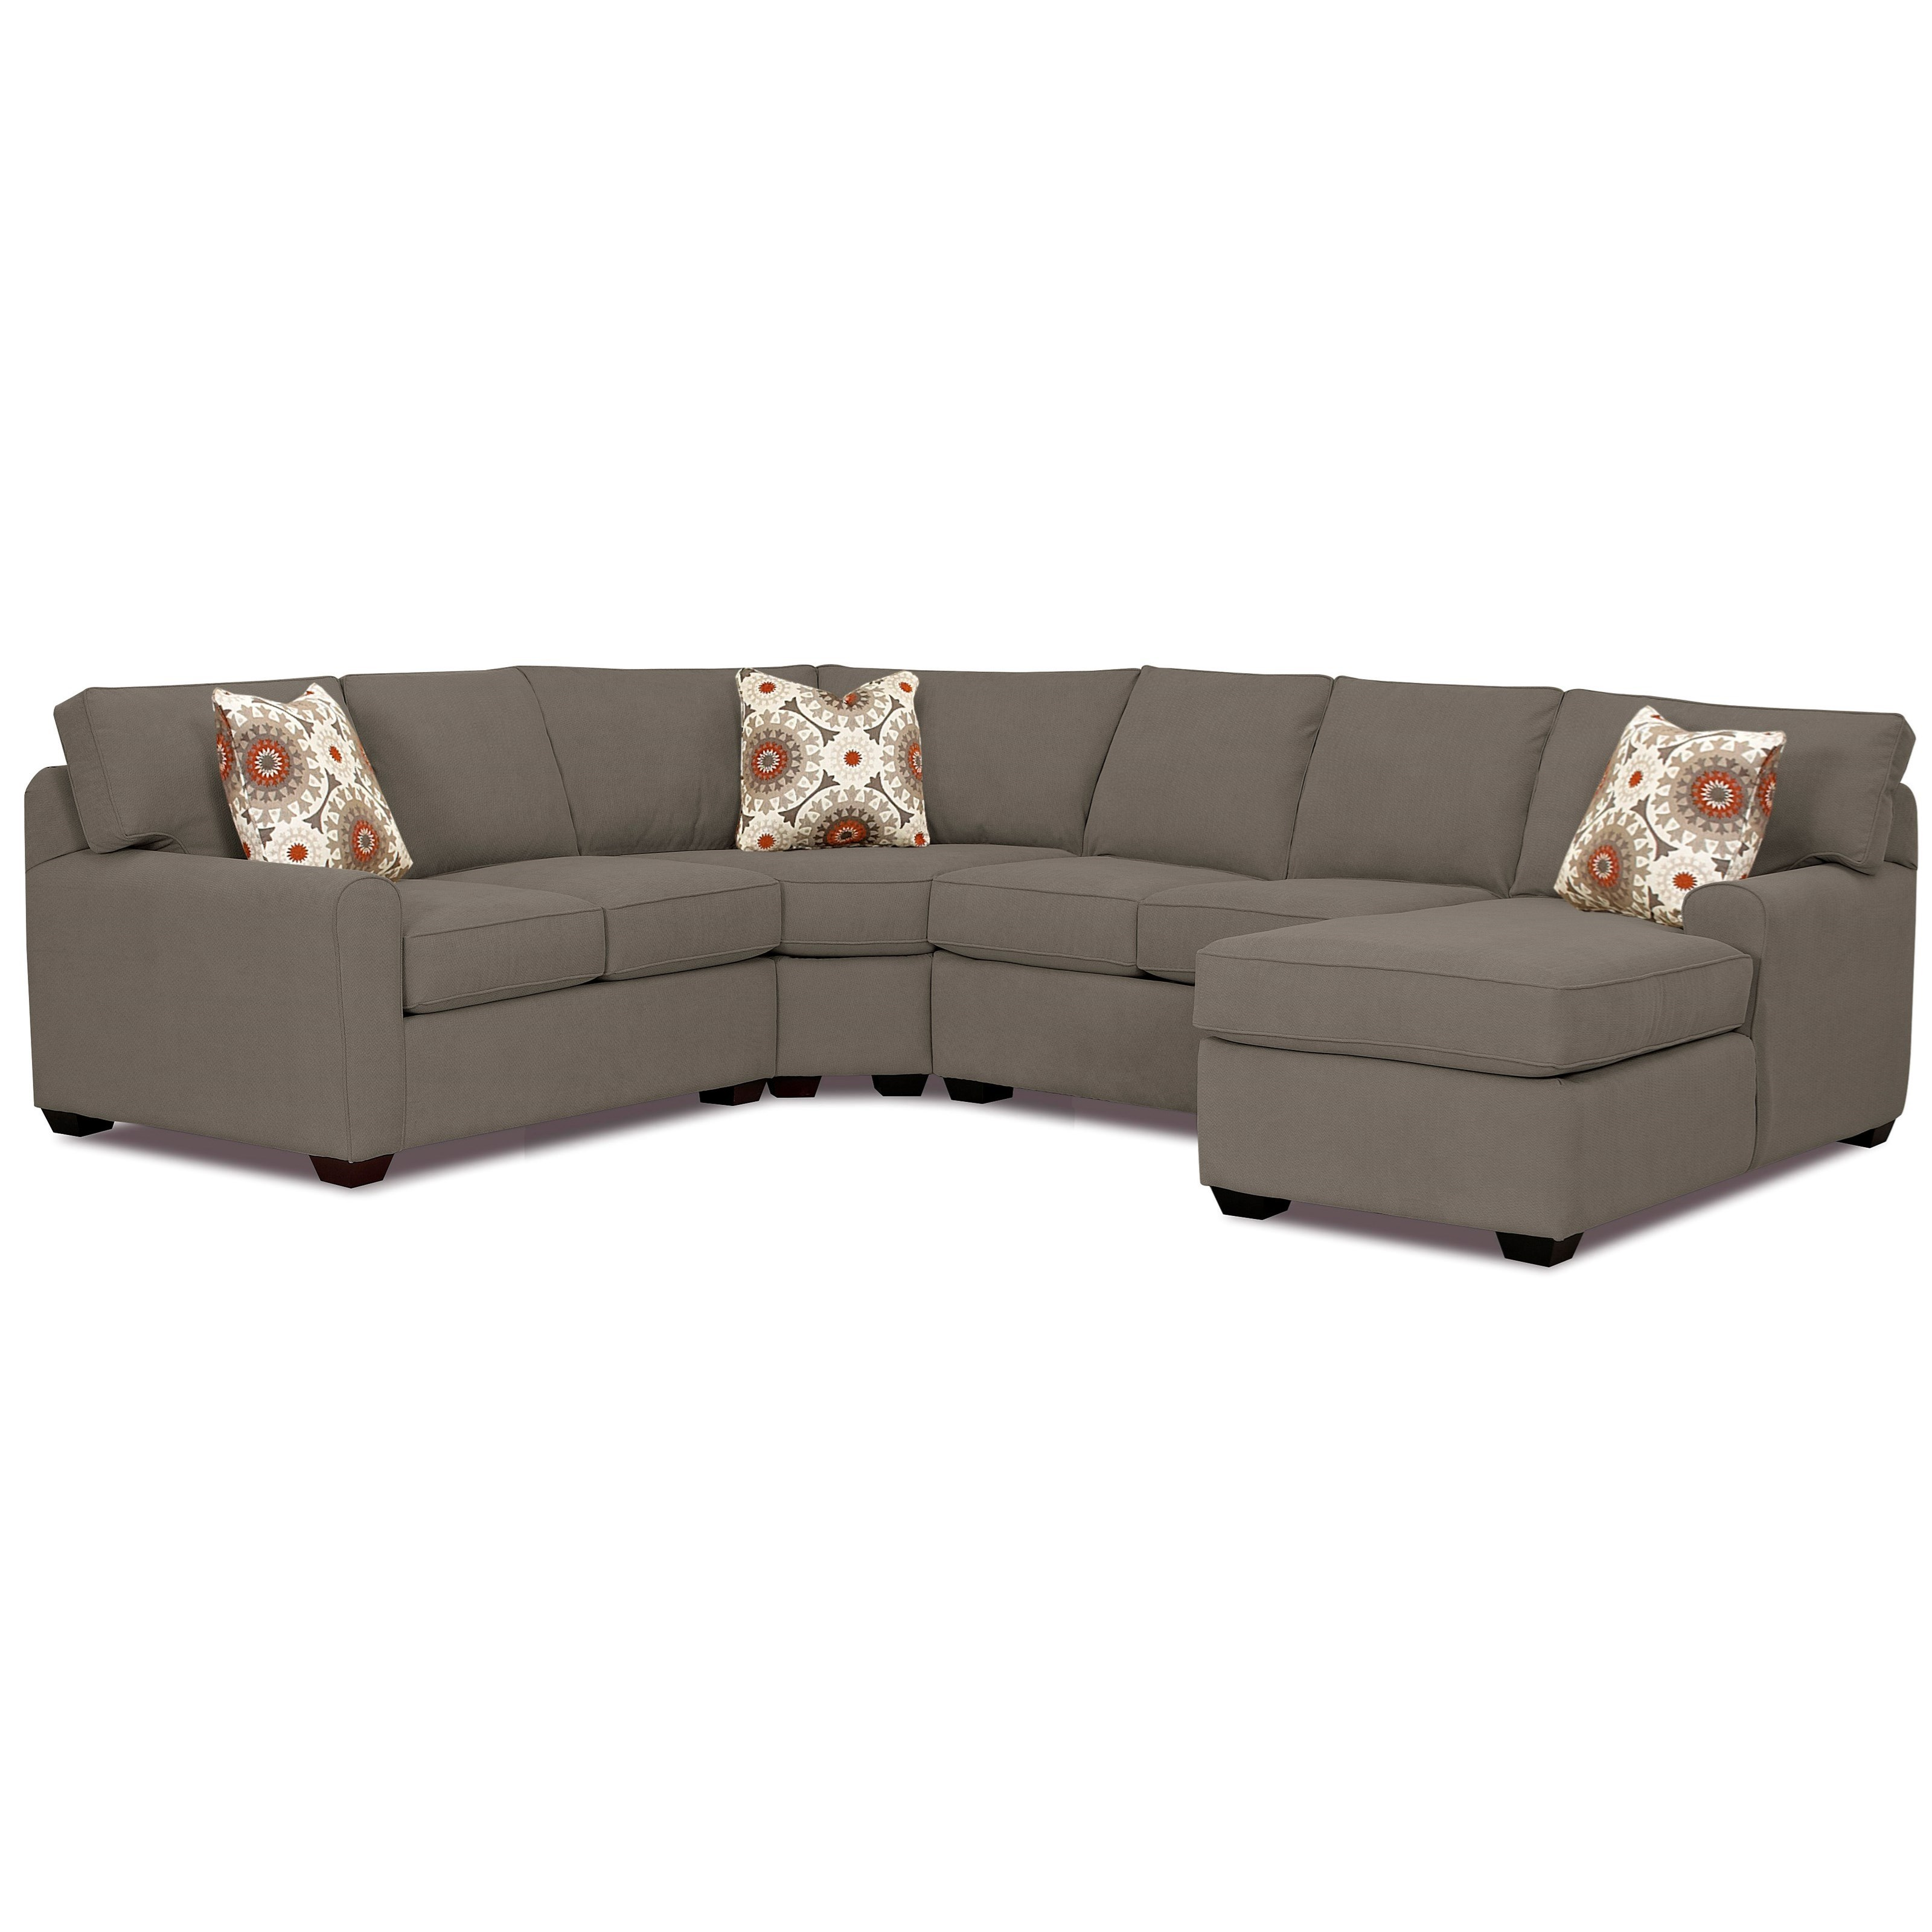 Hybrid 4 Pc Sectional Sofa w/RAF Chaise by Klaussner at Catalog Outlet